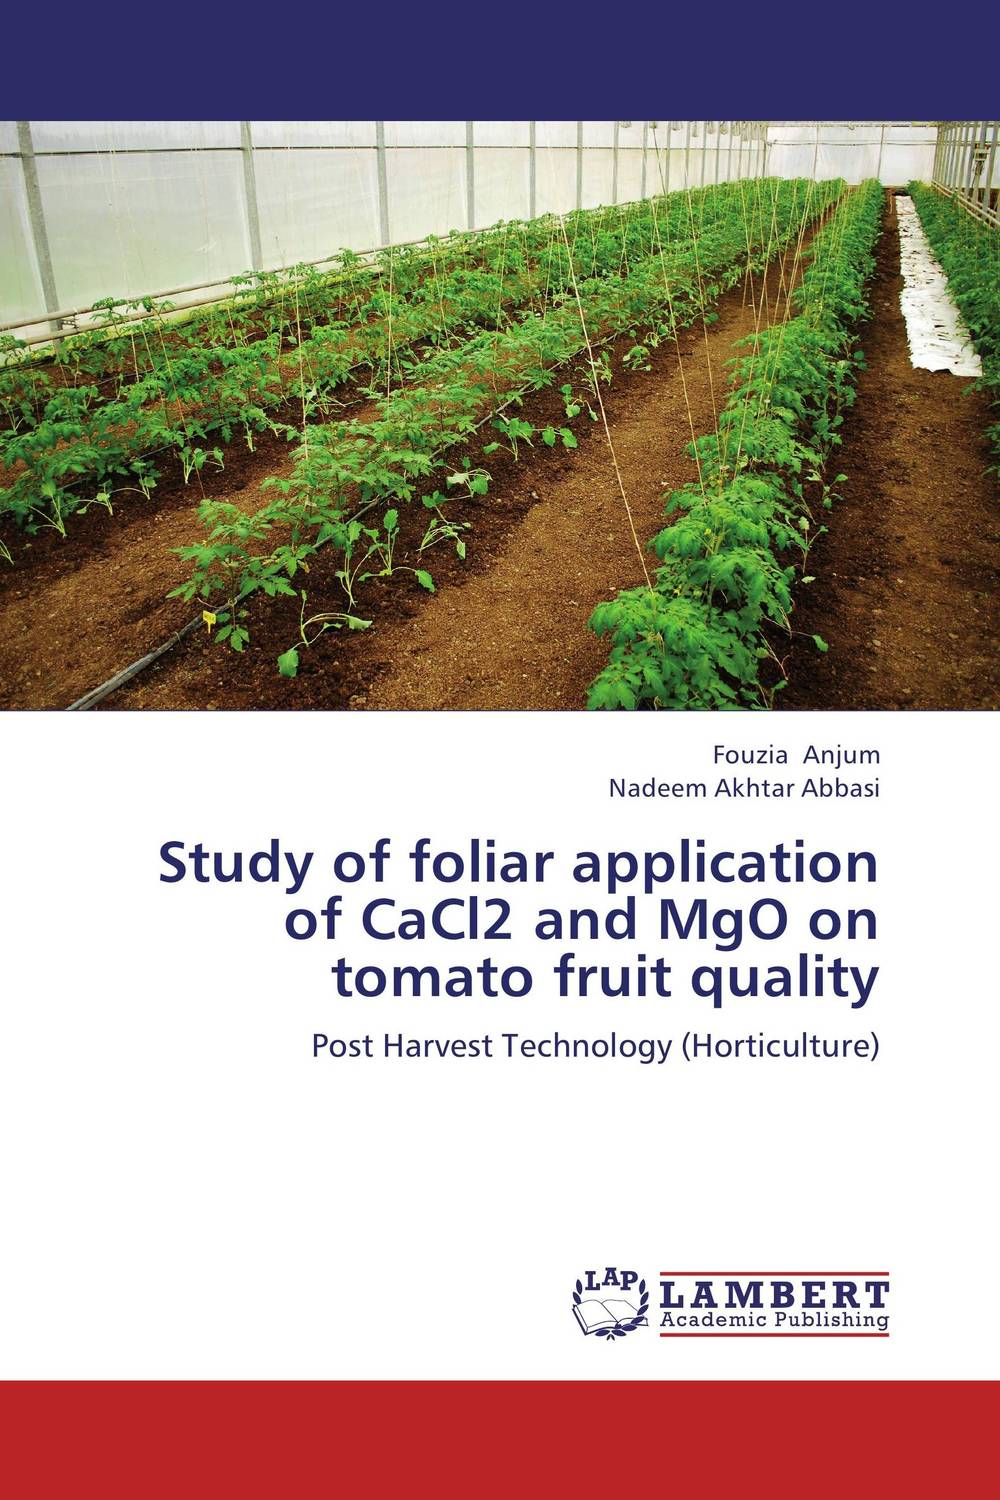 Study of foliar application of CaCl2 and MgO on tomato fruit quality resistance study in tomato